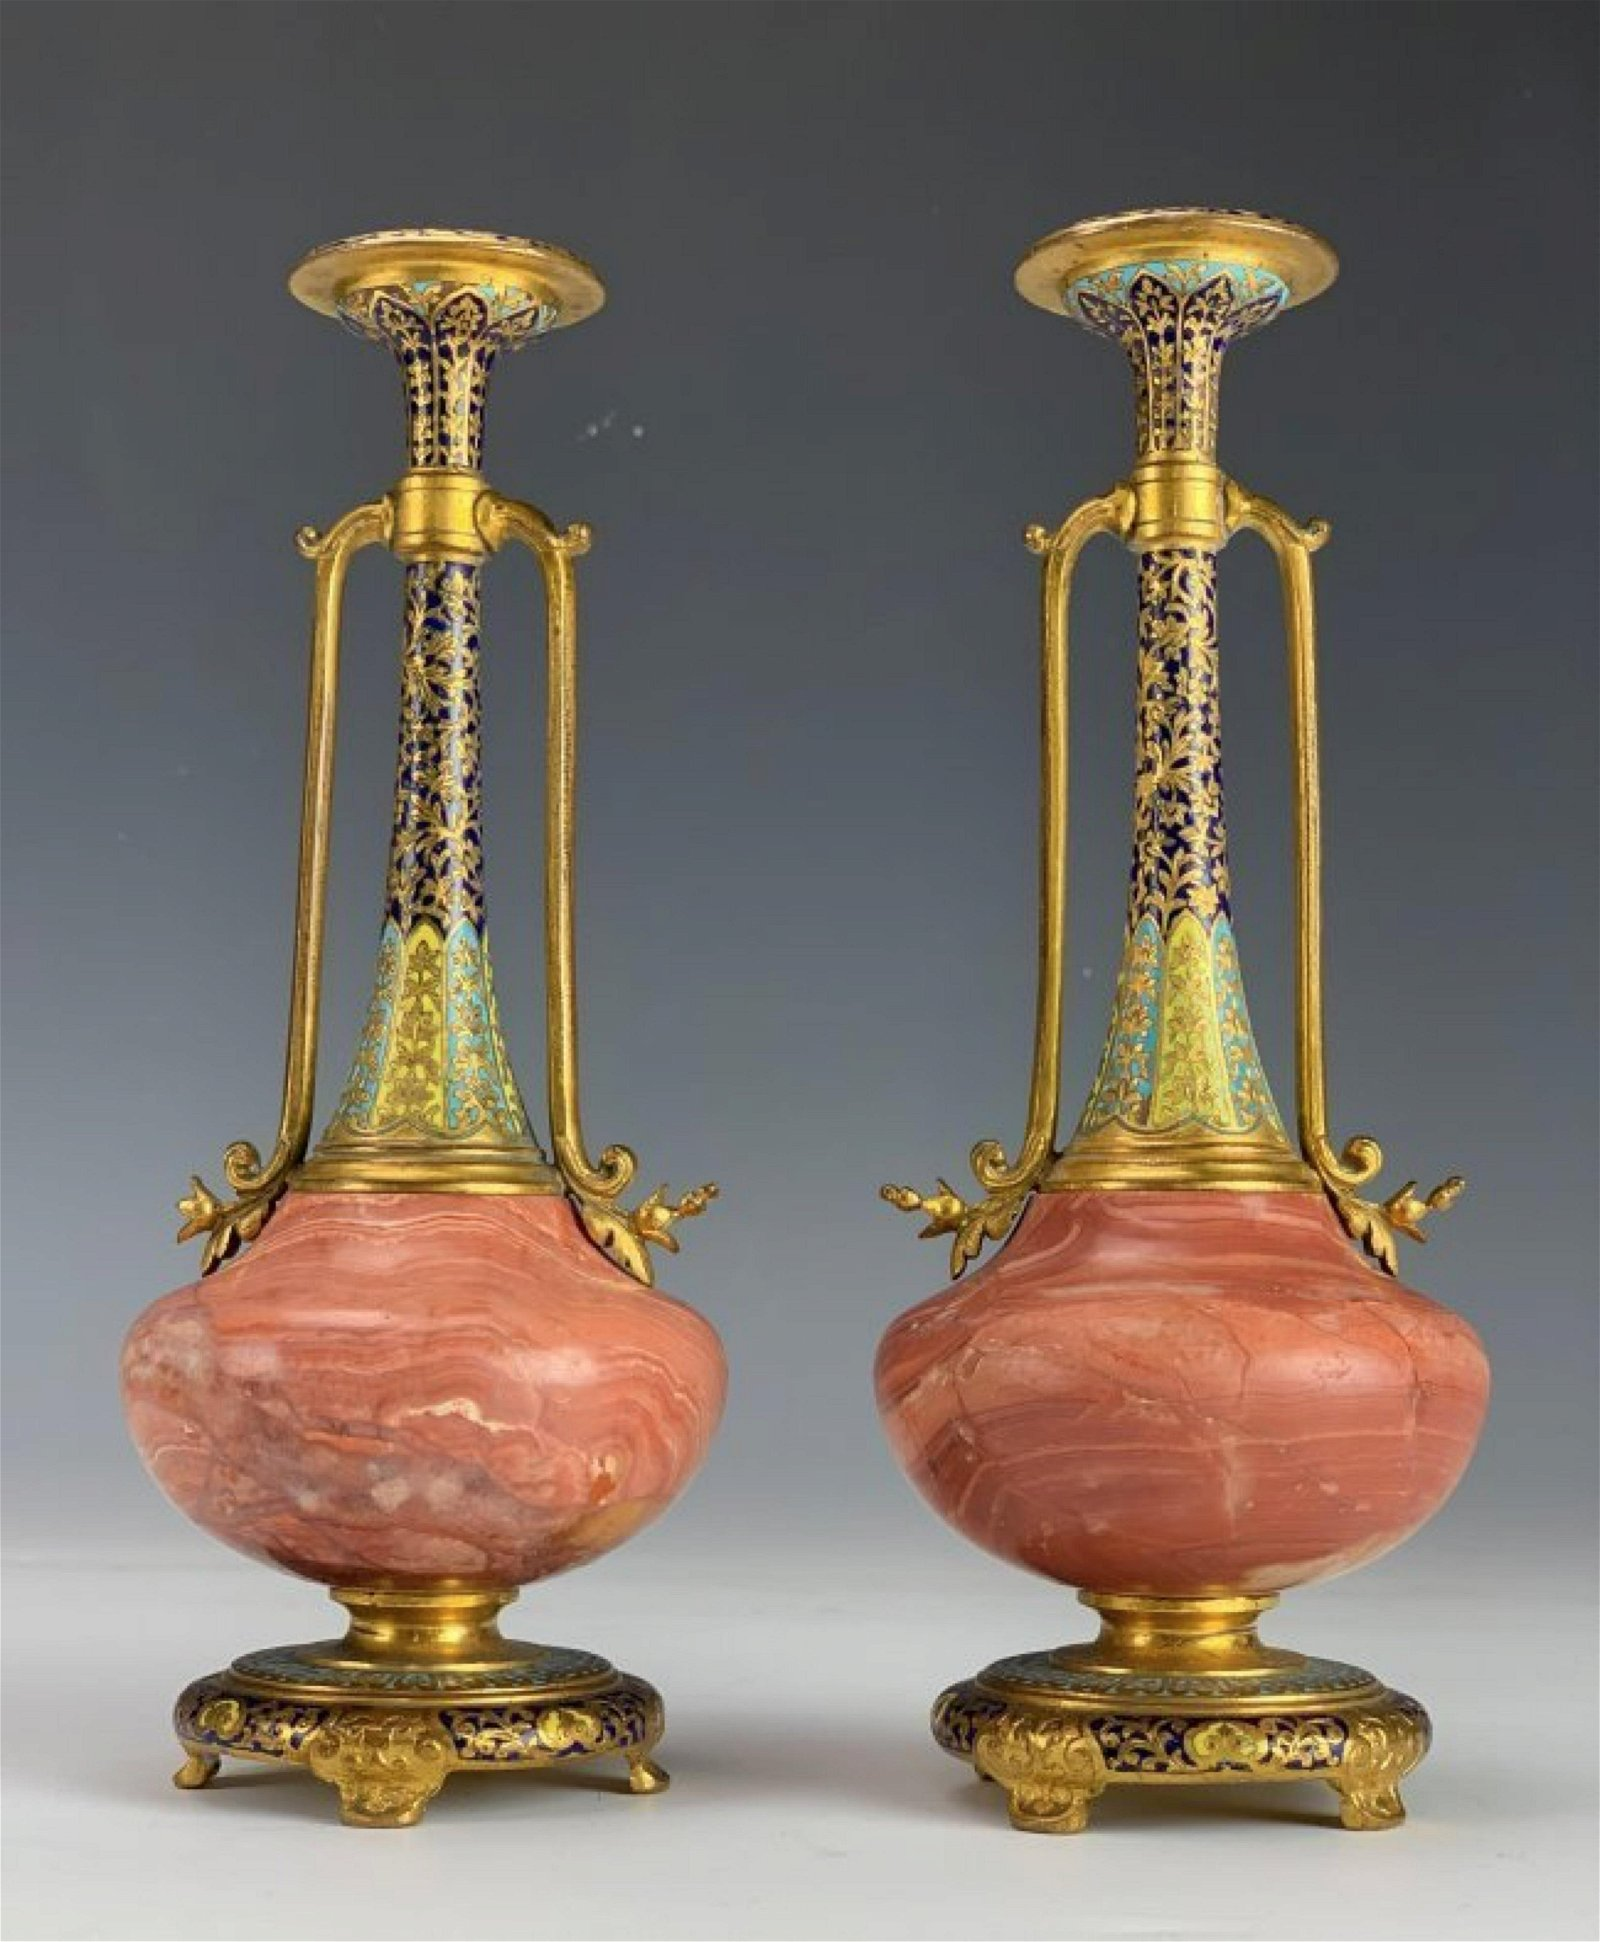 A PAIR OF 19TH C. CHAMPLEVE ENAMEL VASES